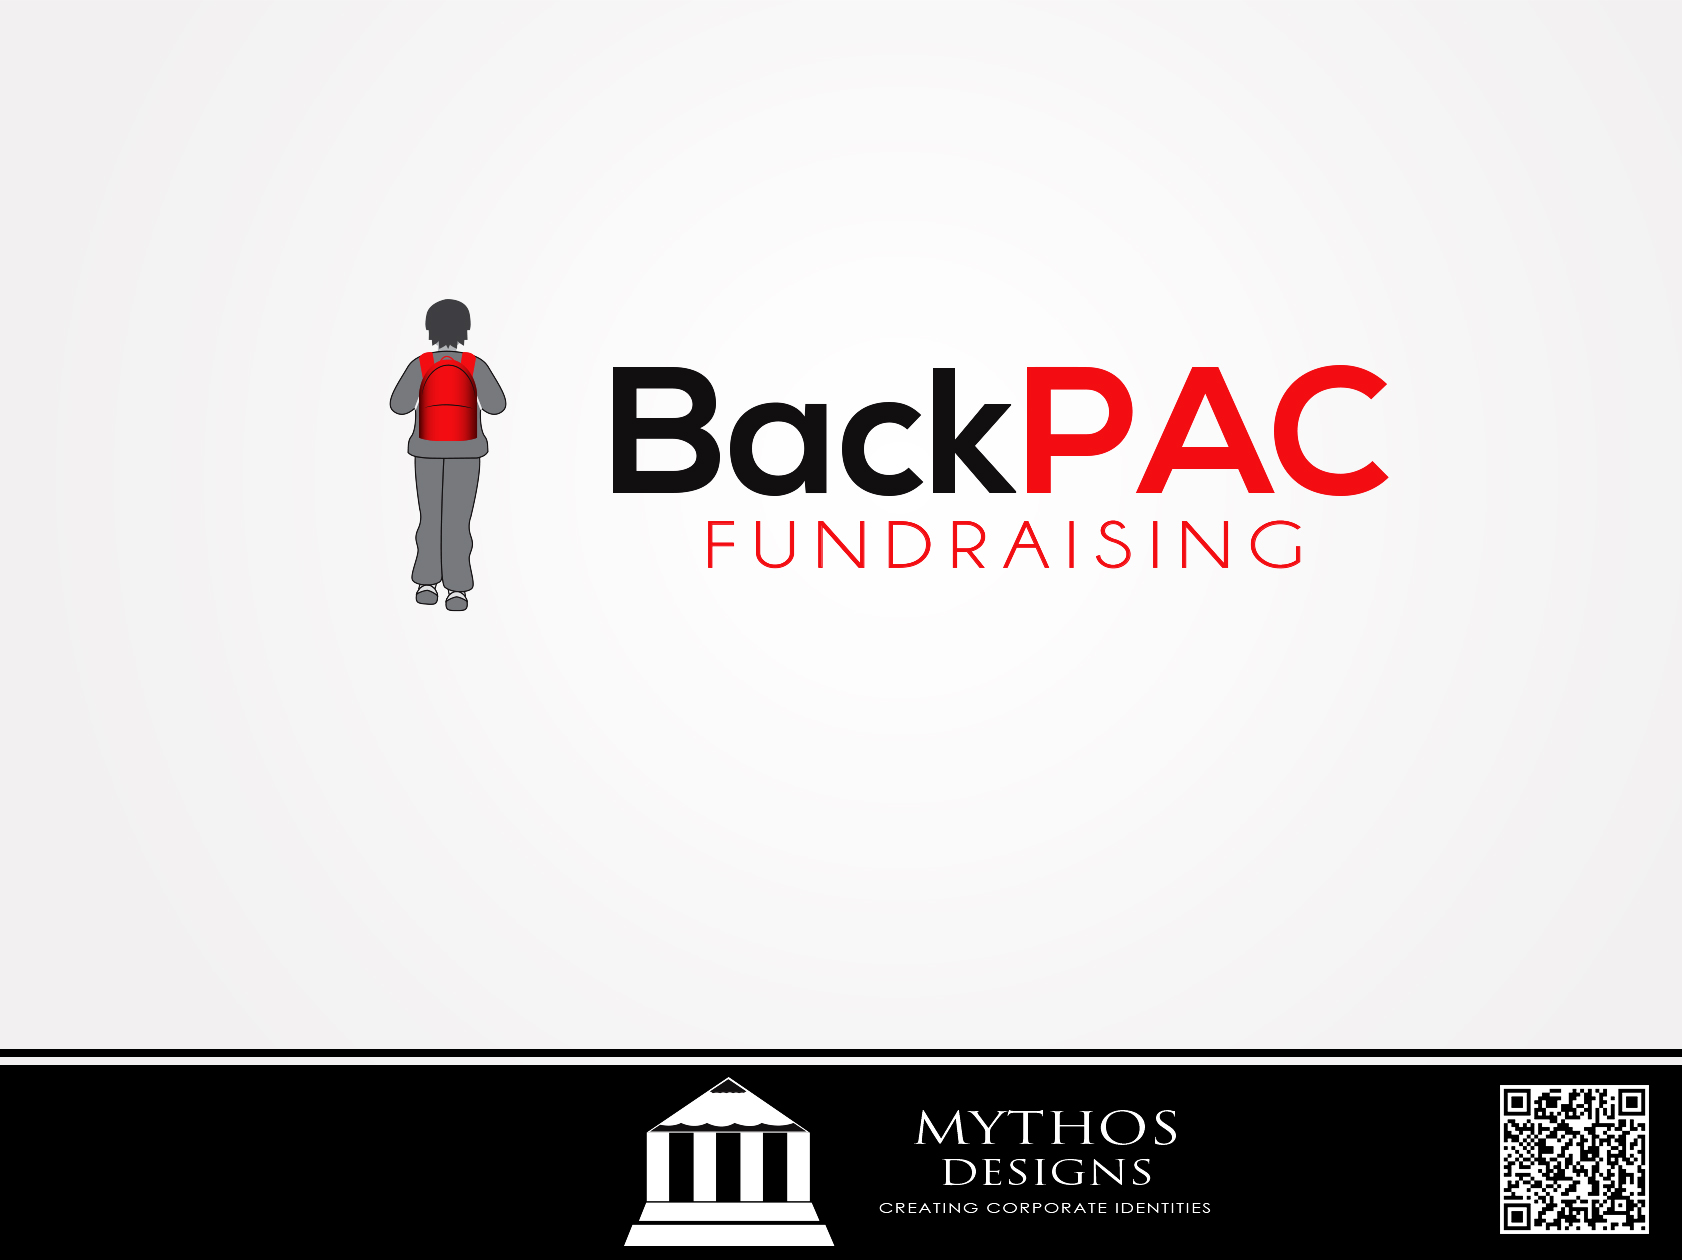 Logo Design by Mythos Designs - Entry No. 39 in the Logo Design Contest Imaginative Logo Design for BackPAC Fundraising.